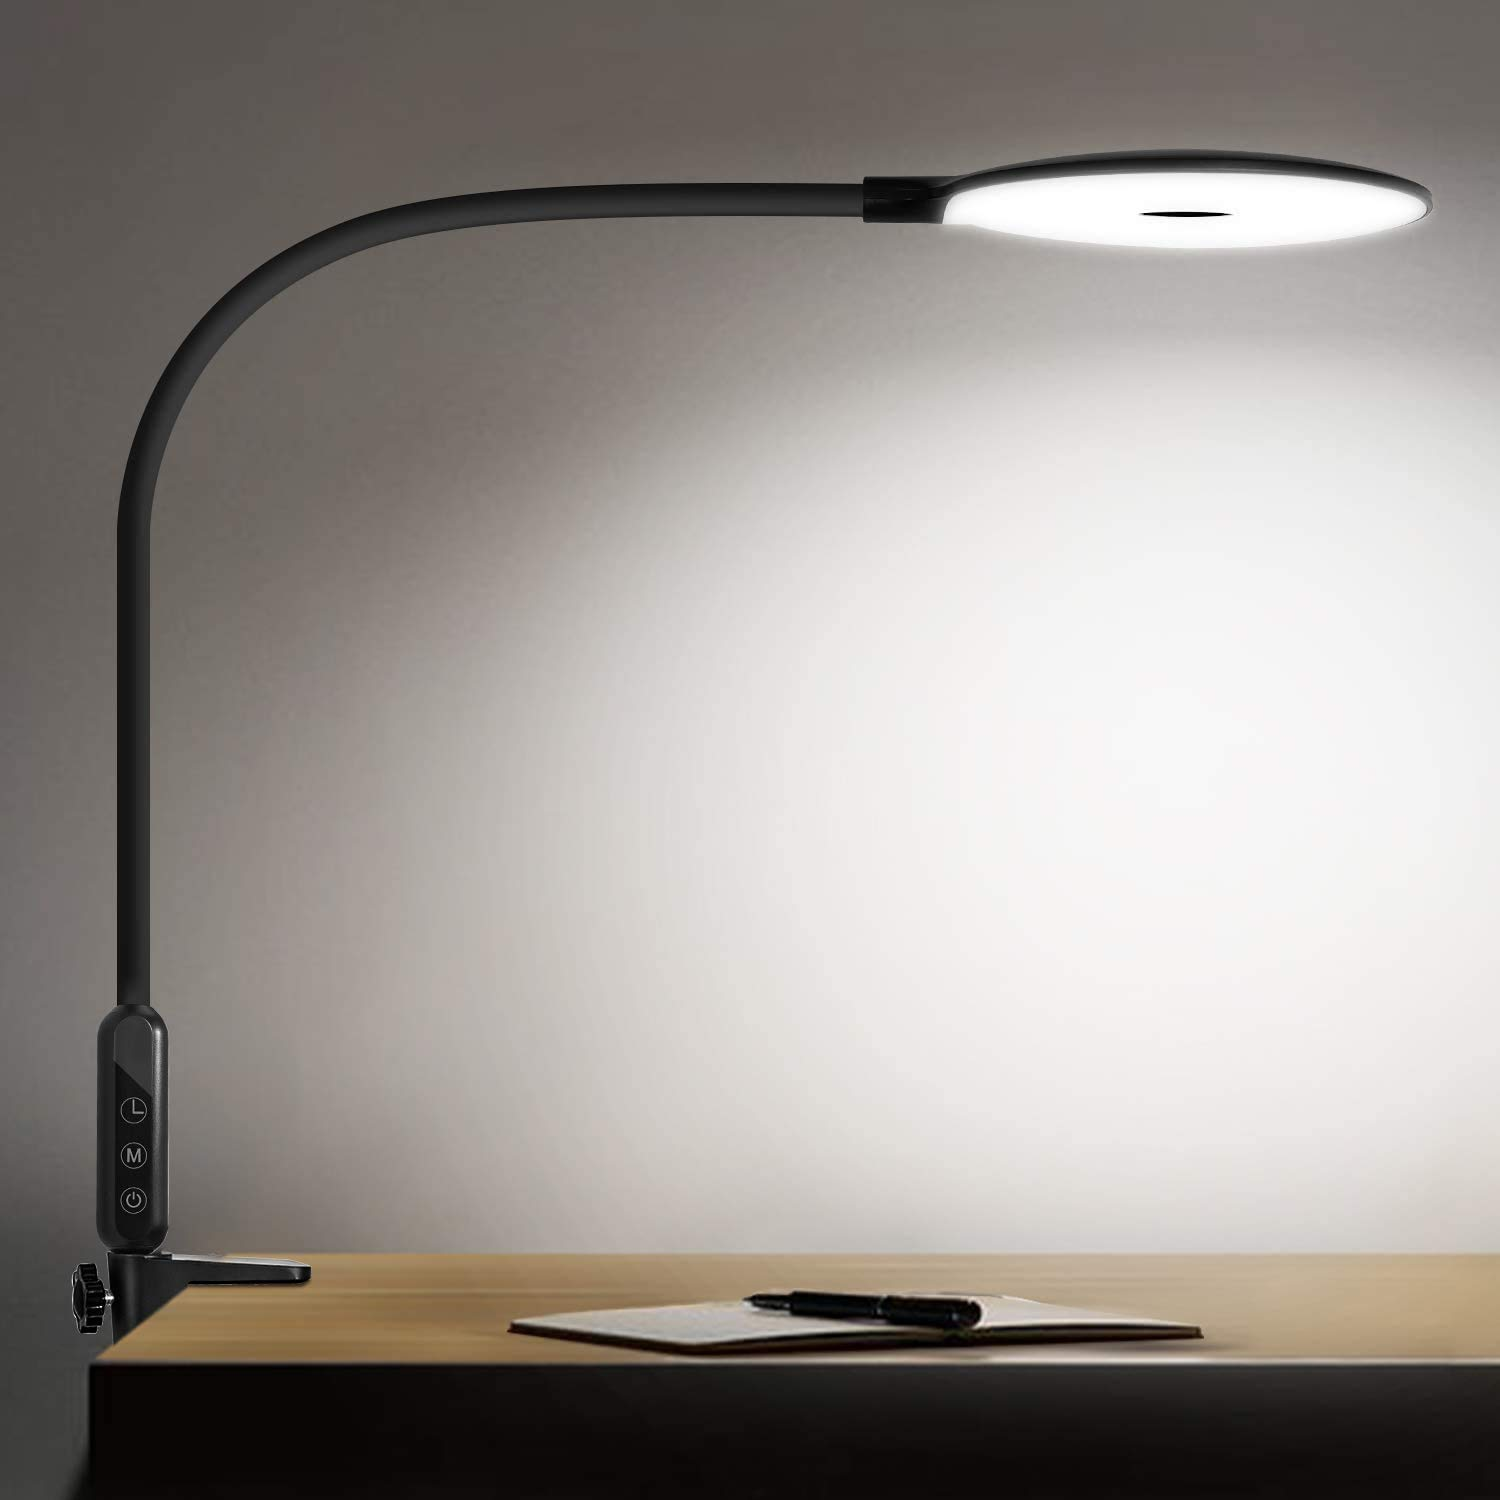 LED Desk Lamp with Clamp Reading Lamp Eye-Care Table Lamp 4 Brightness